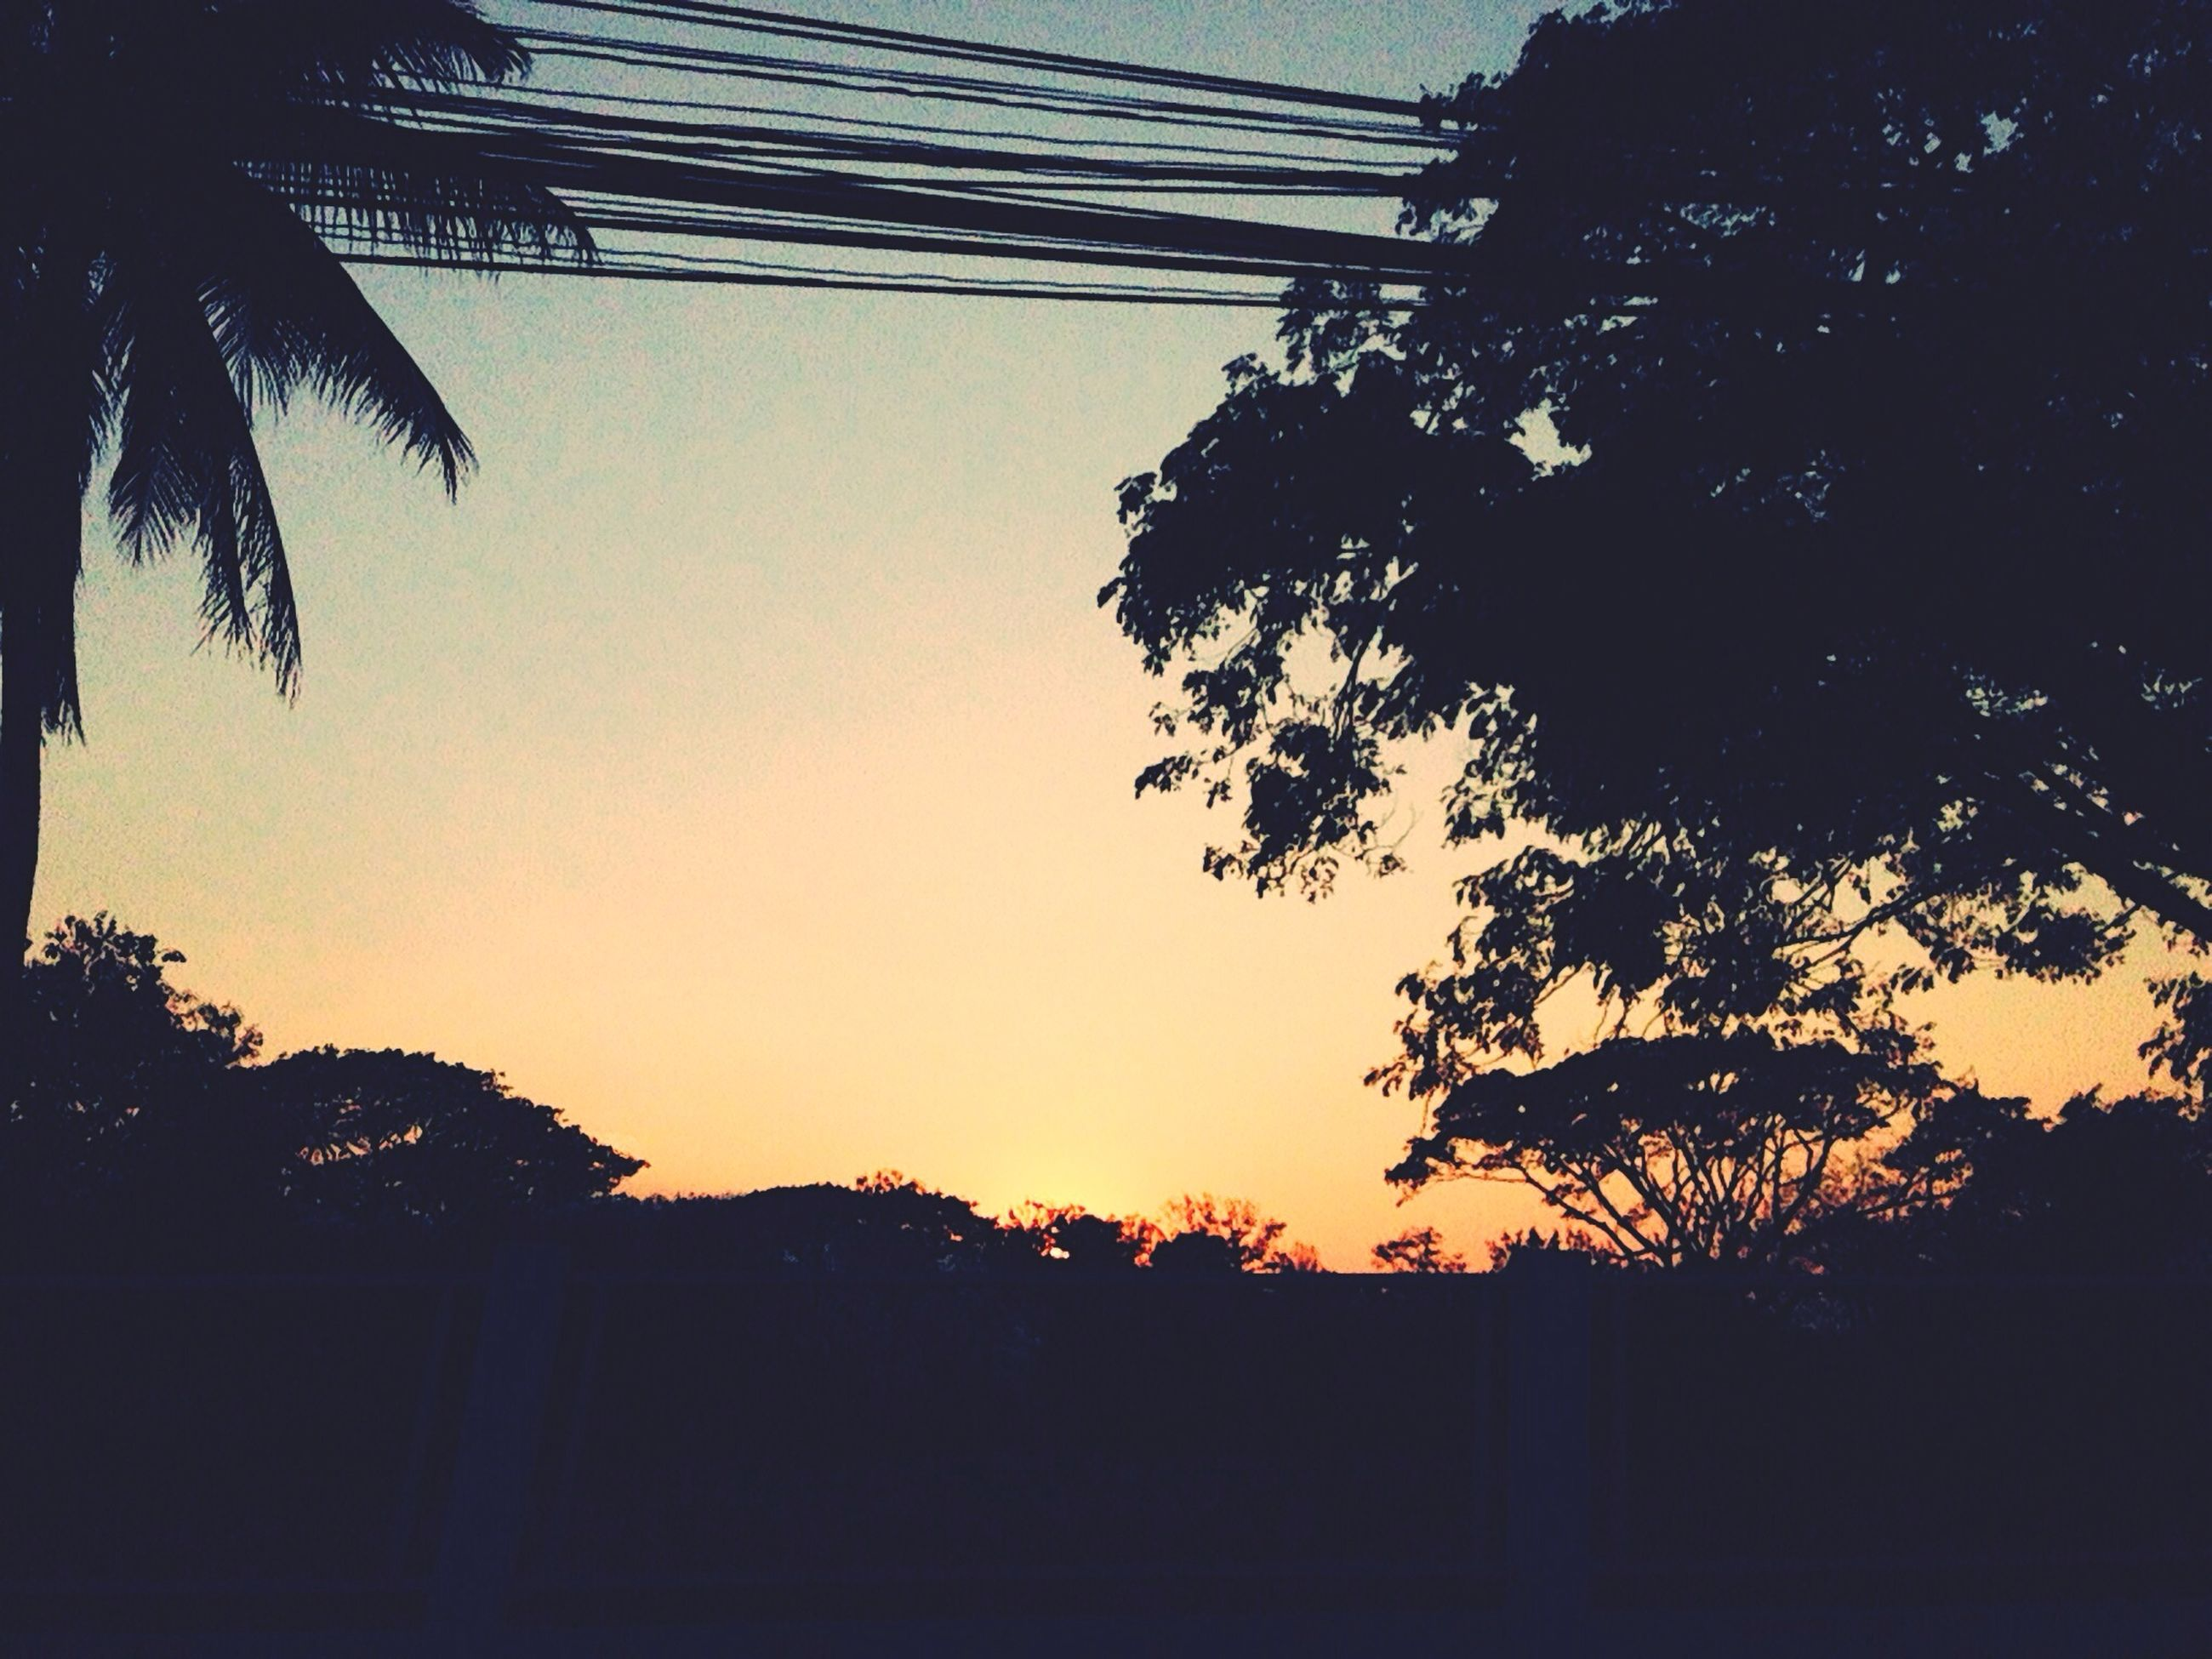 silhouette, sunset, tree, clear sky, low angle view, copy space, nature, growth, orange color, tranquility, beauty in nature, sky, scenics, tranquil scene, dusk, branch, outline, no people, outdoors, built structure